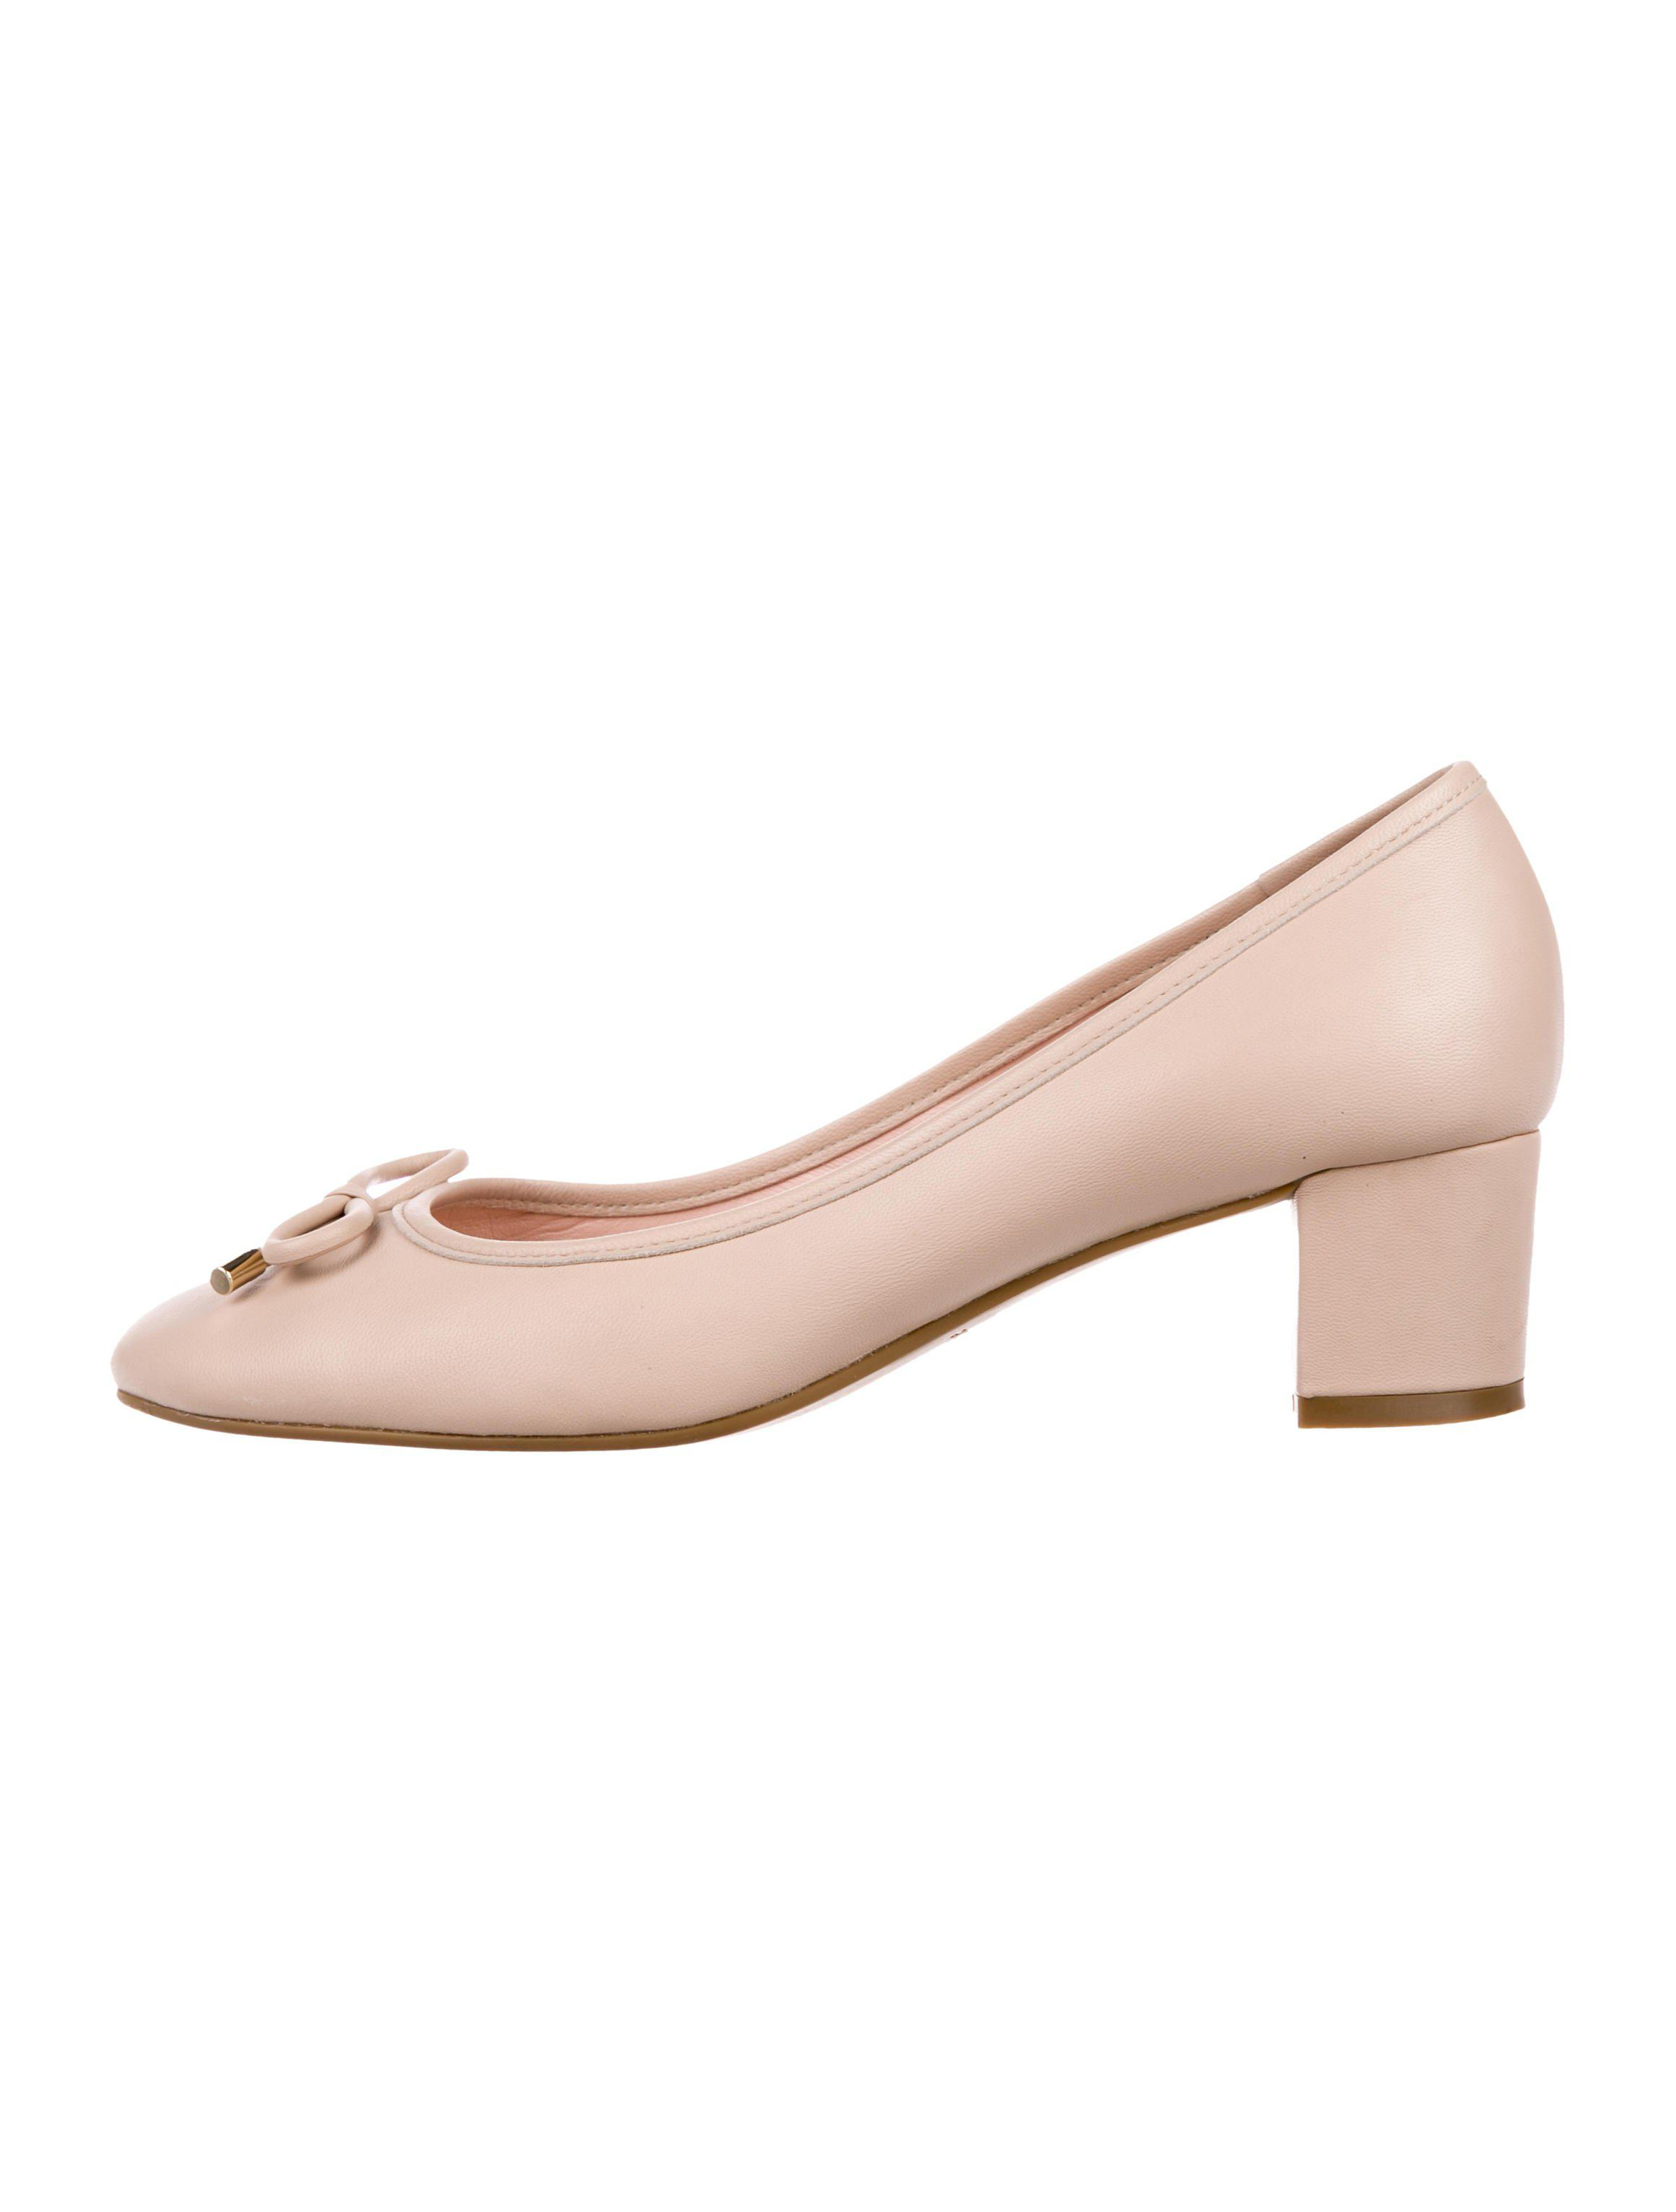 13e6e9b1e00 Lyst - Kate Spade Leather Bow Pumps Beige in Natural